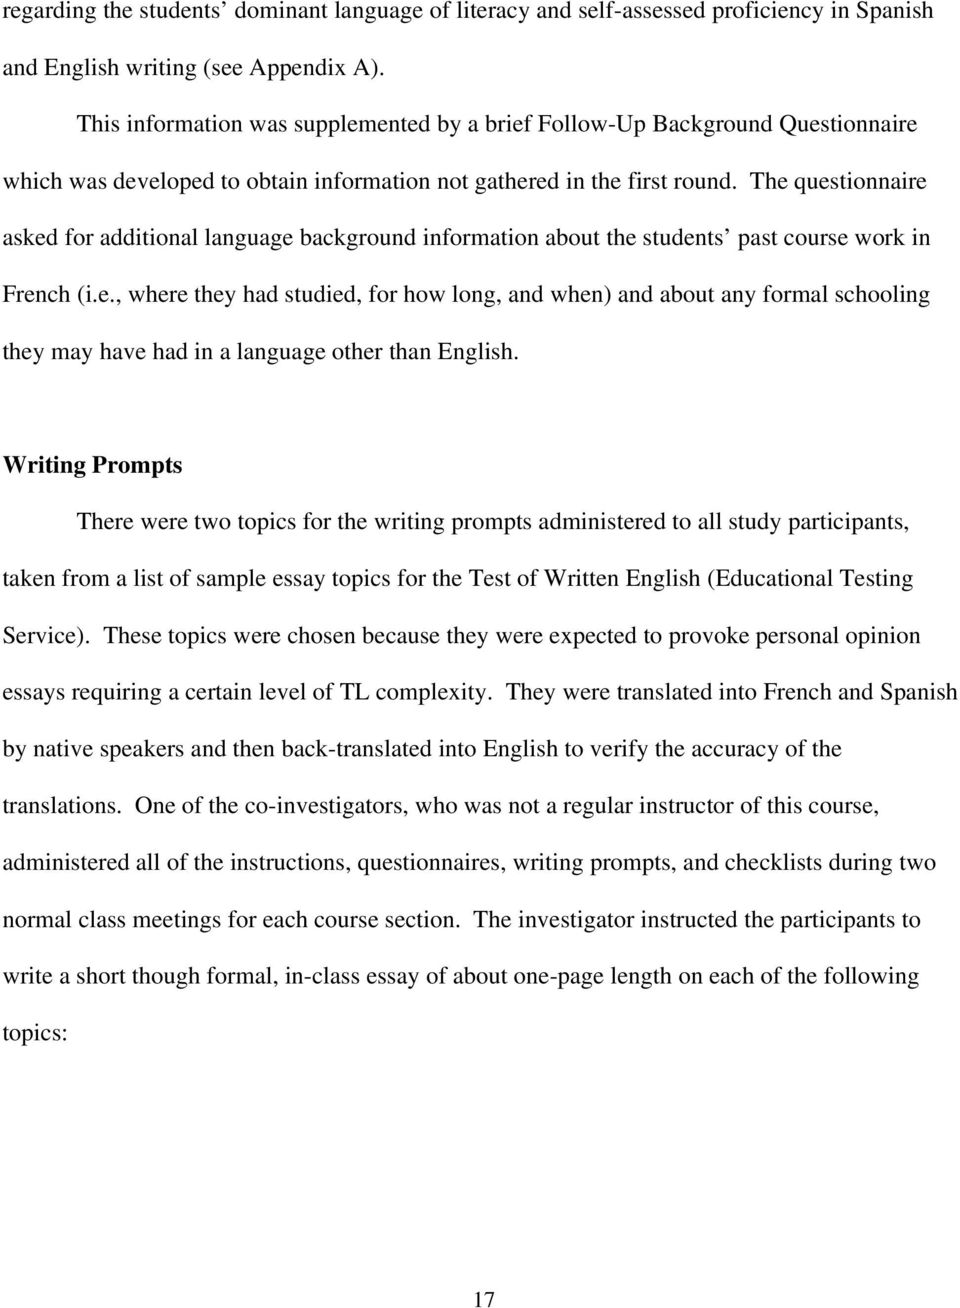 college vs high school essay compare and contrast how to write a  student council essay ideas problem solution essay ideas problem french language essay topics informative essay topics